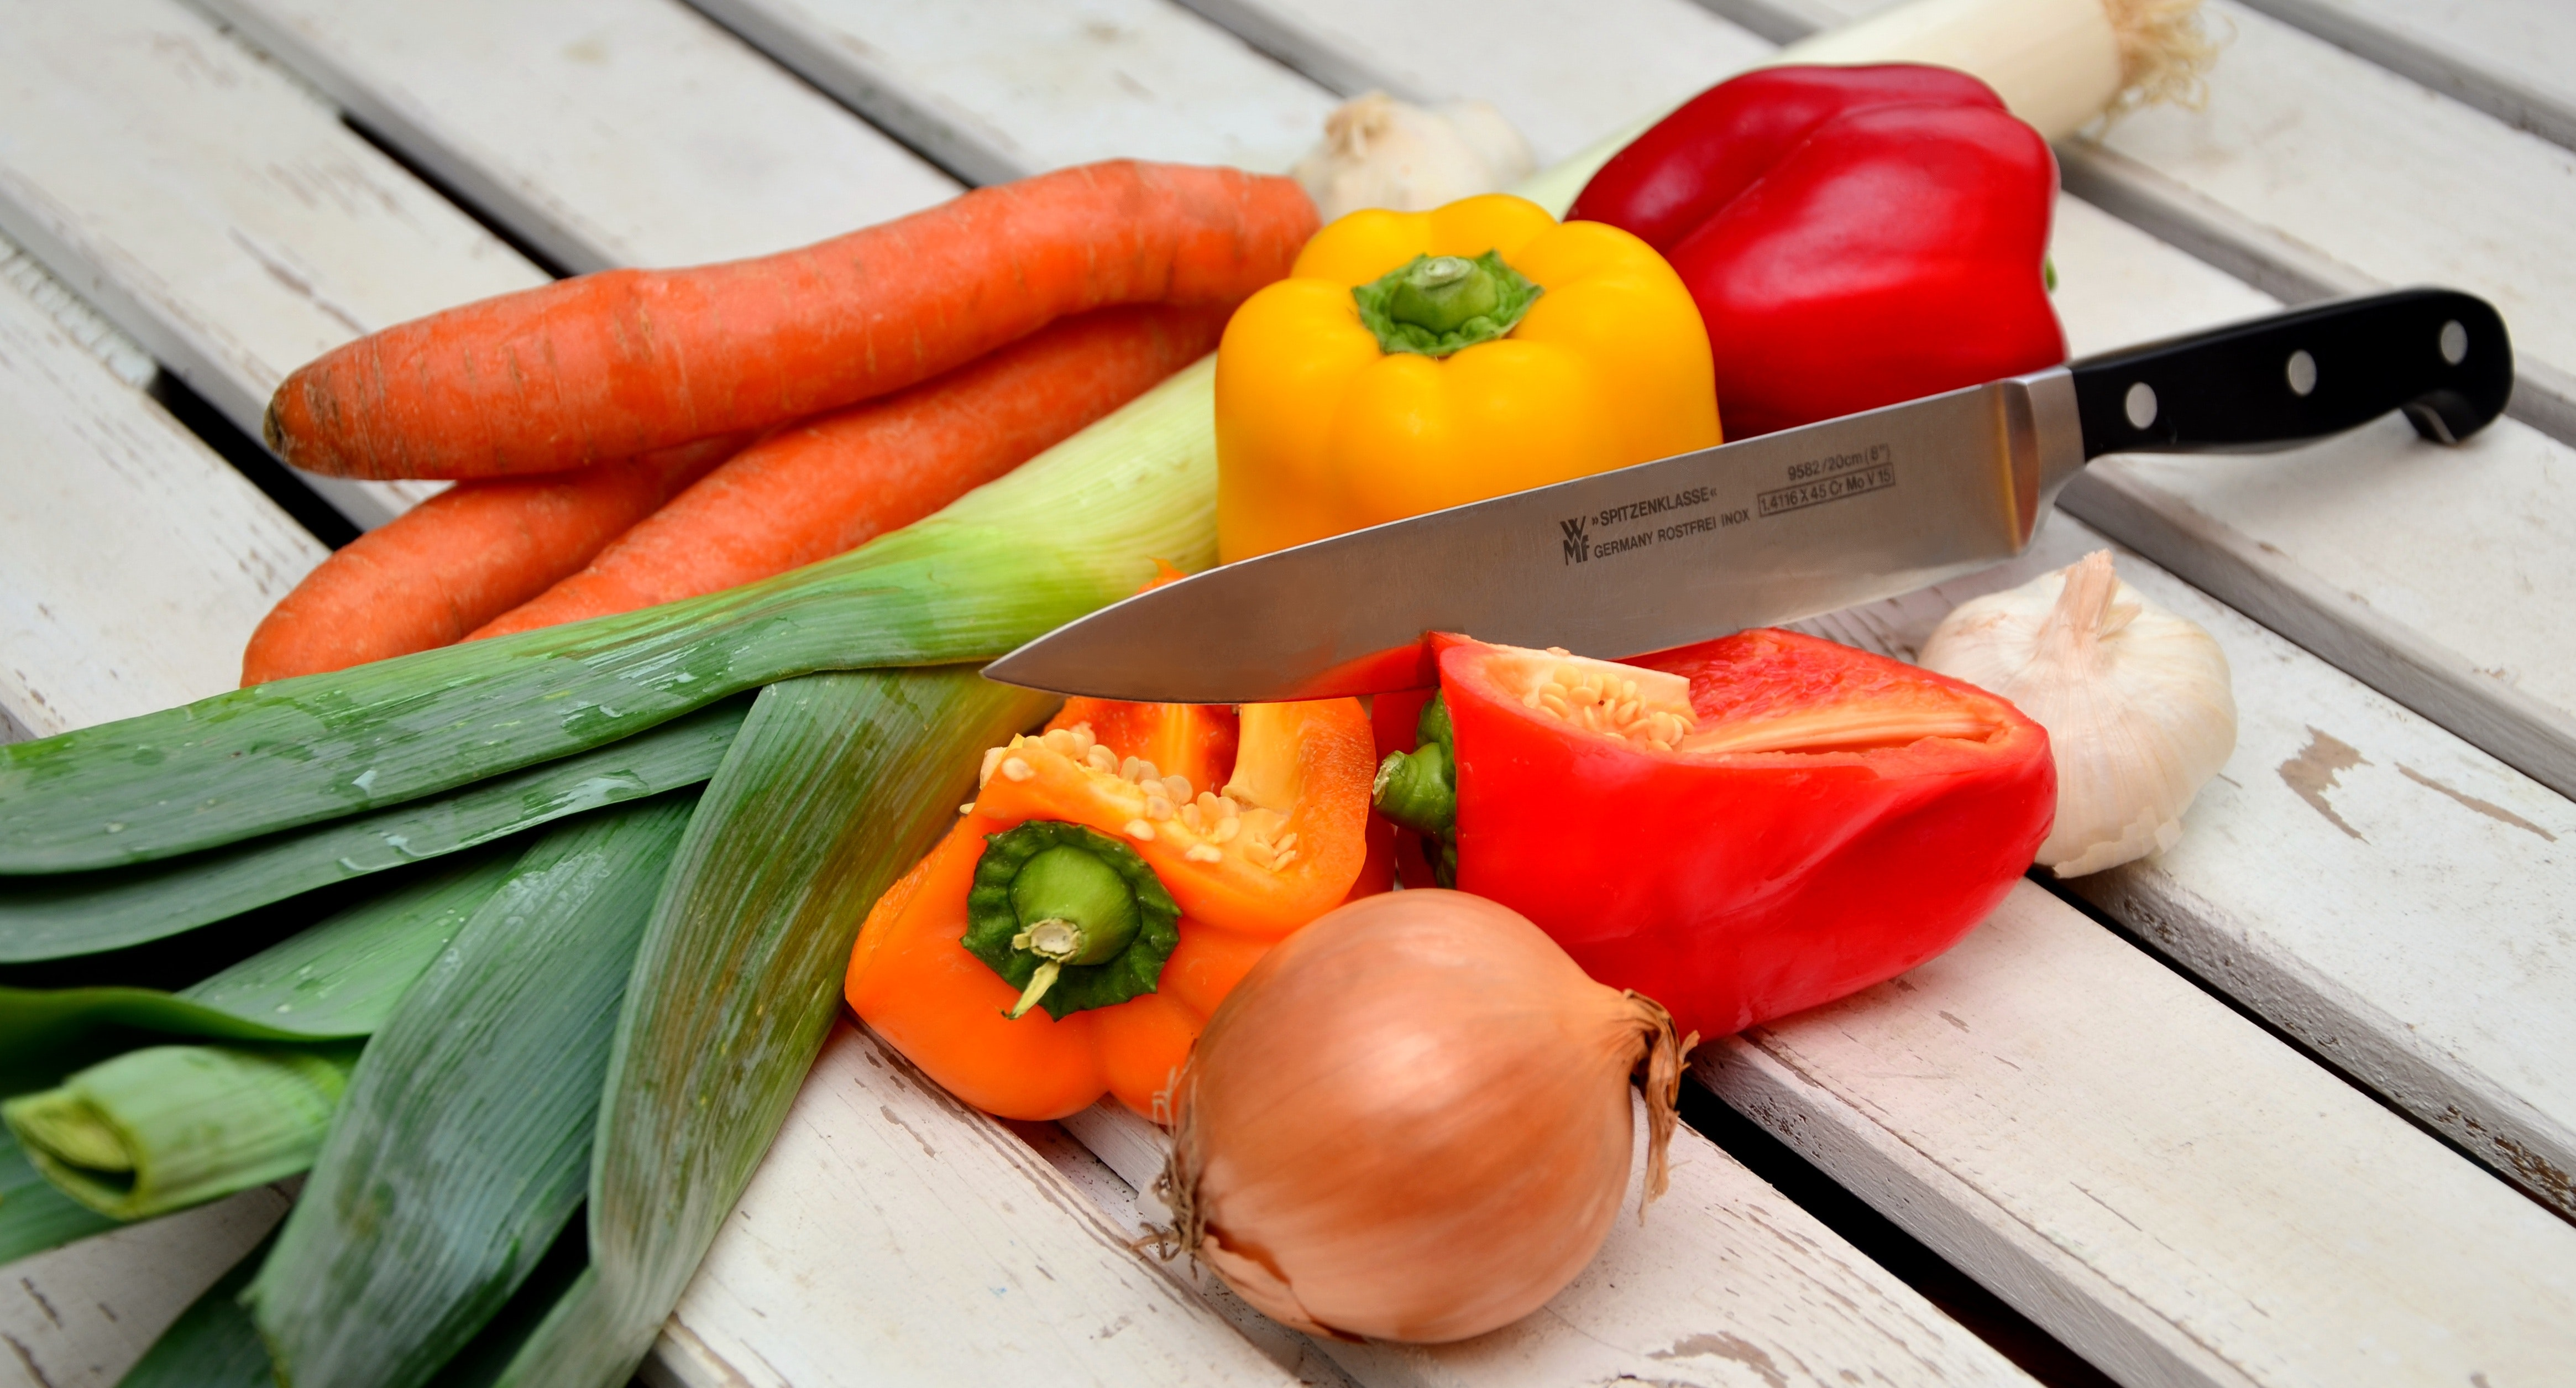 Vegetables With Knife, Bell peppers, Carrots, Cooking, Food, HQ Photo